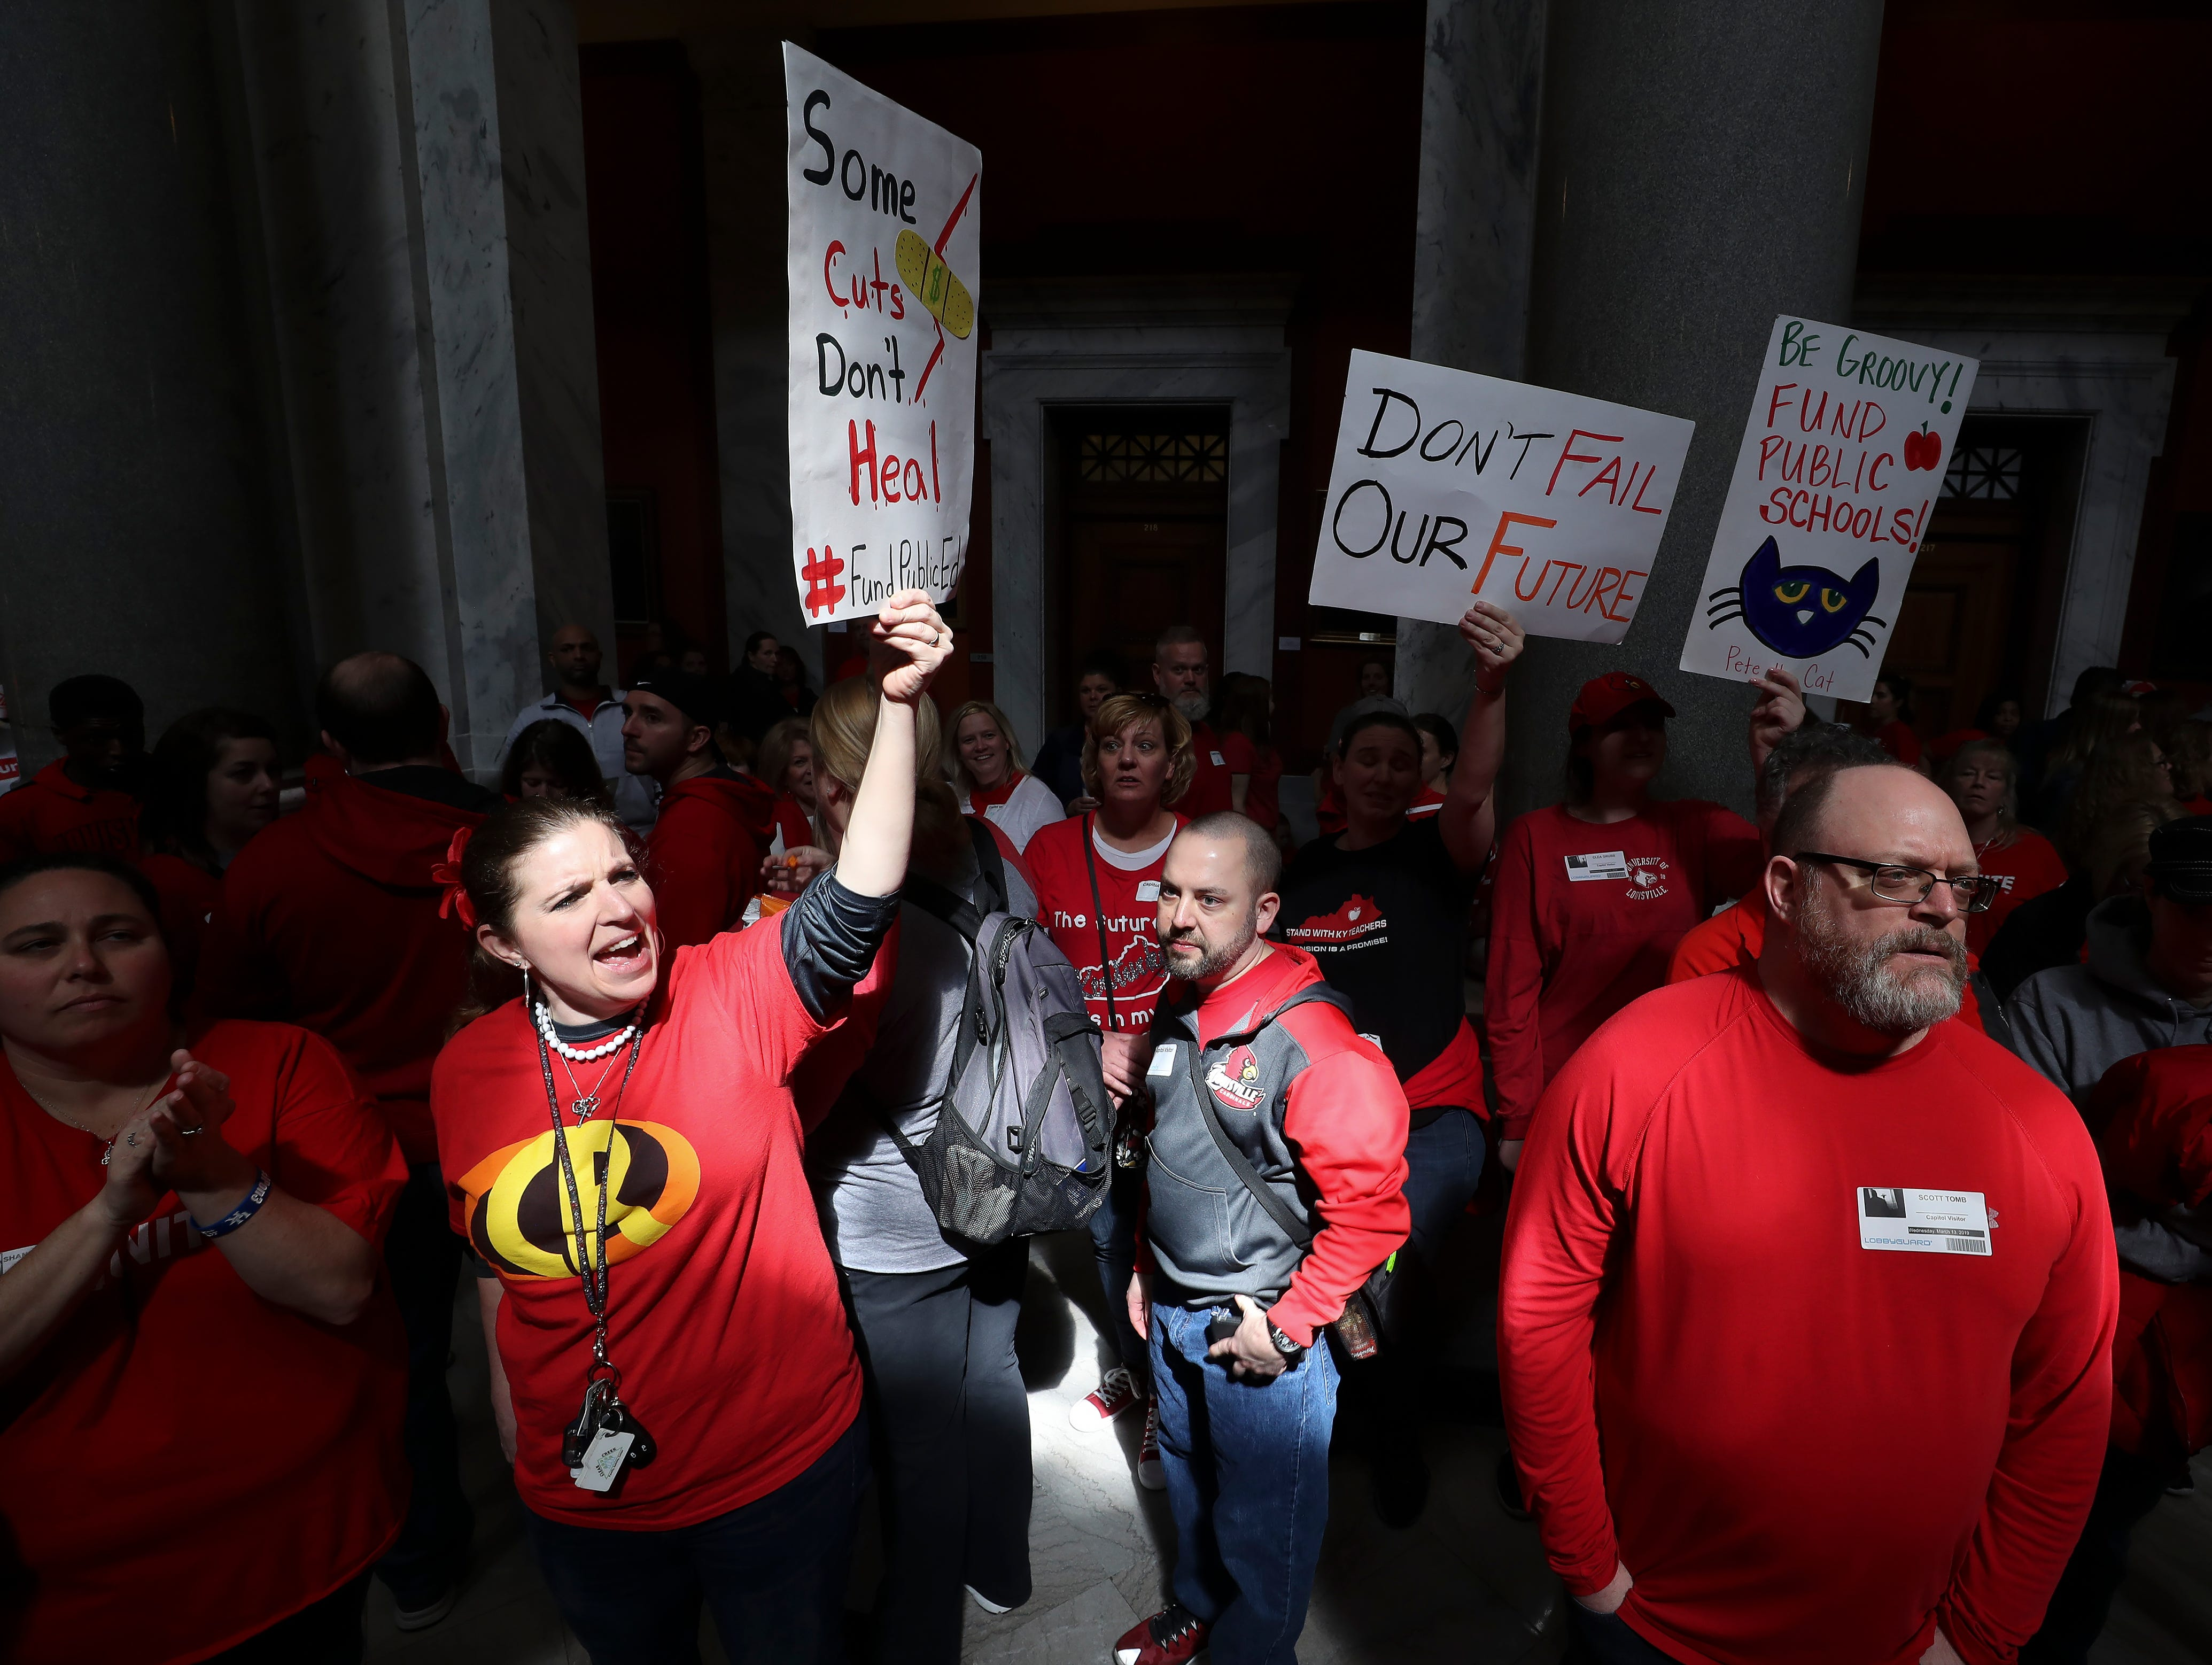 Faith Ashton, a teacher at Coral Ridge Elementary School in Louisville, protested bills under consideration that she believes will harm education in the state and reduce pensions. March 13, 2019